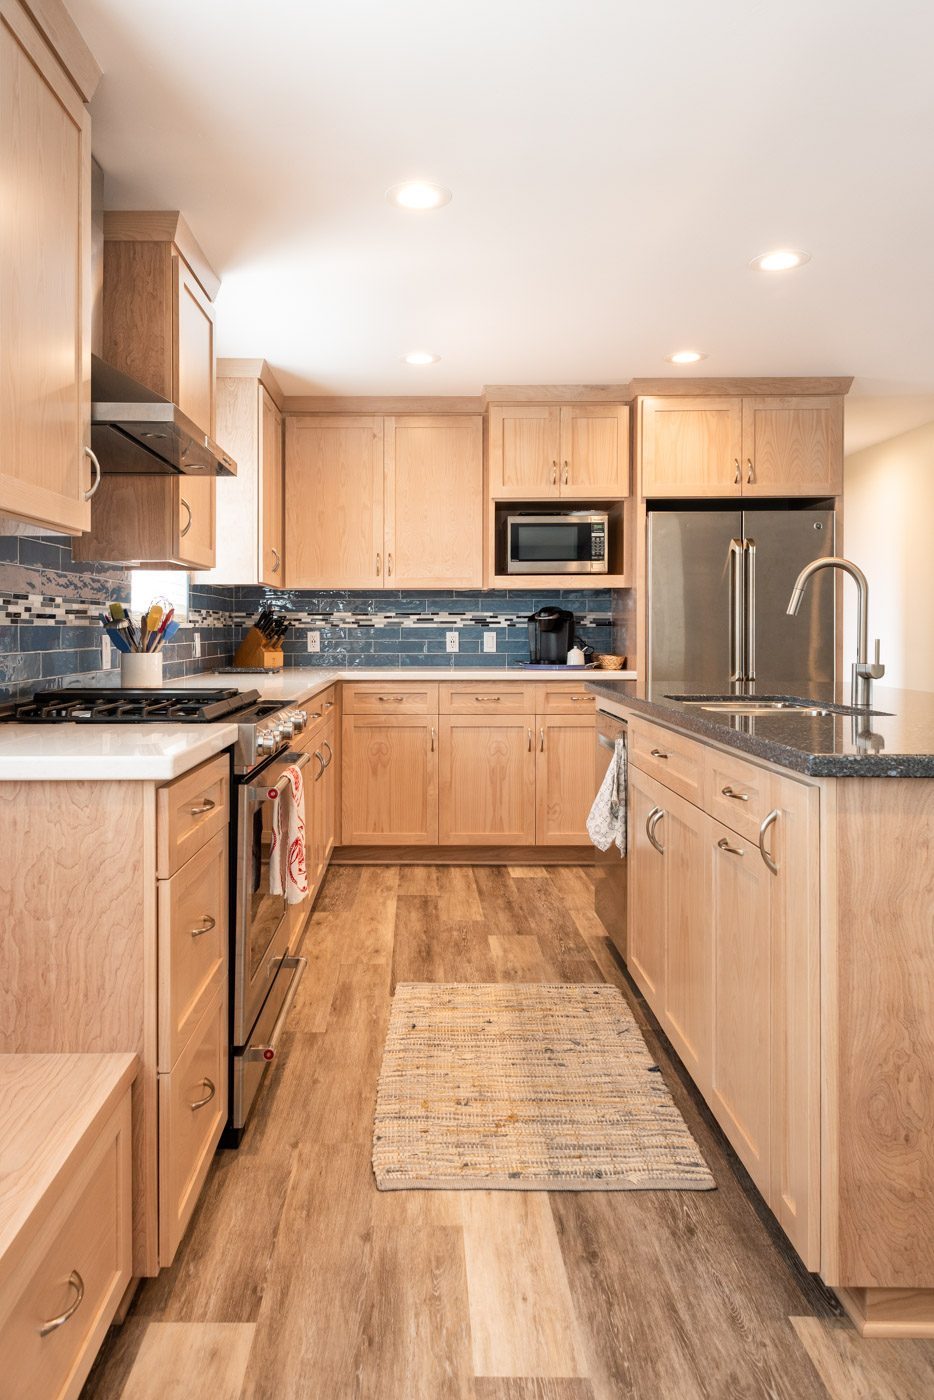 Coastal Contemporary custom kitchen cabinets with natural wood stain